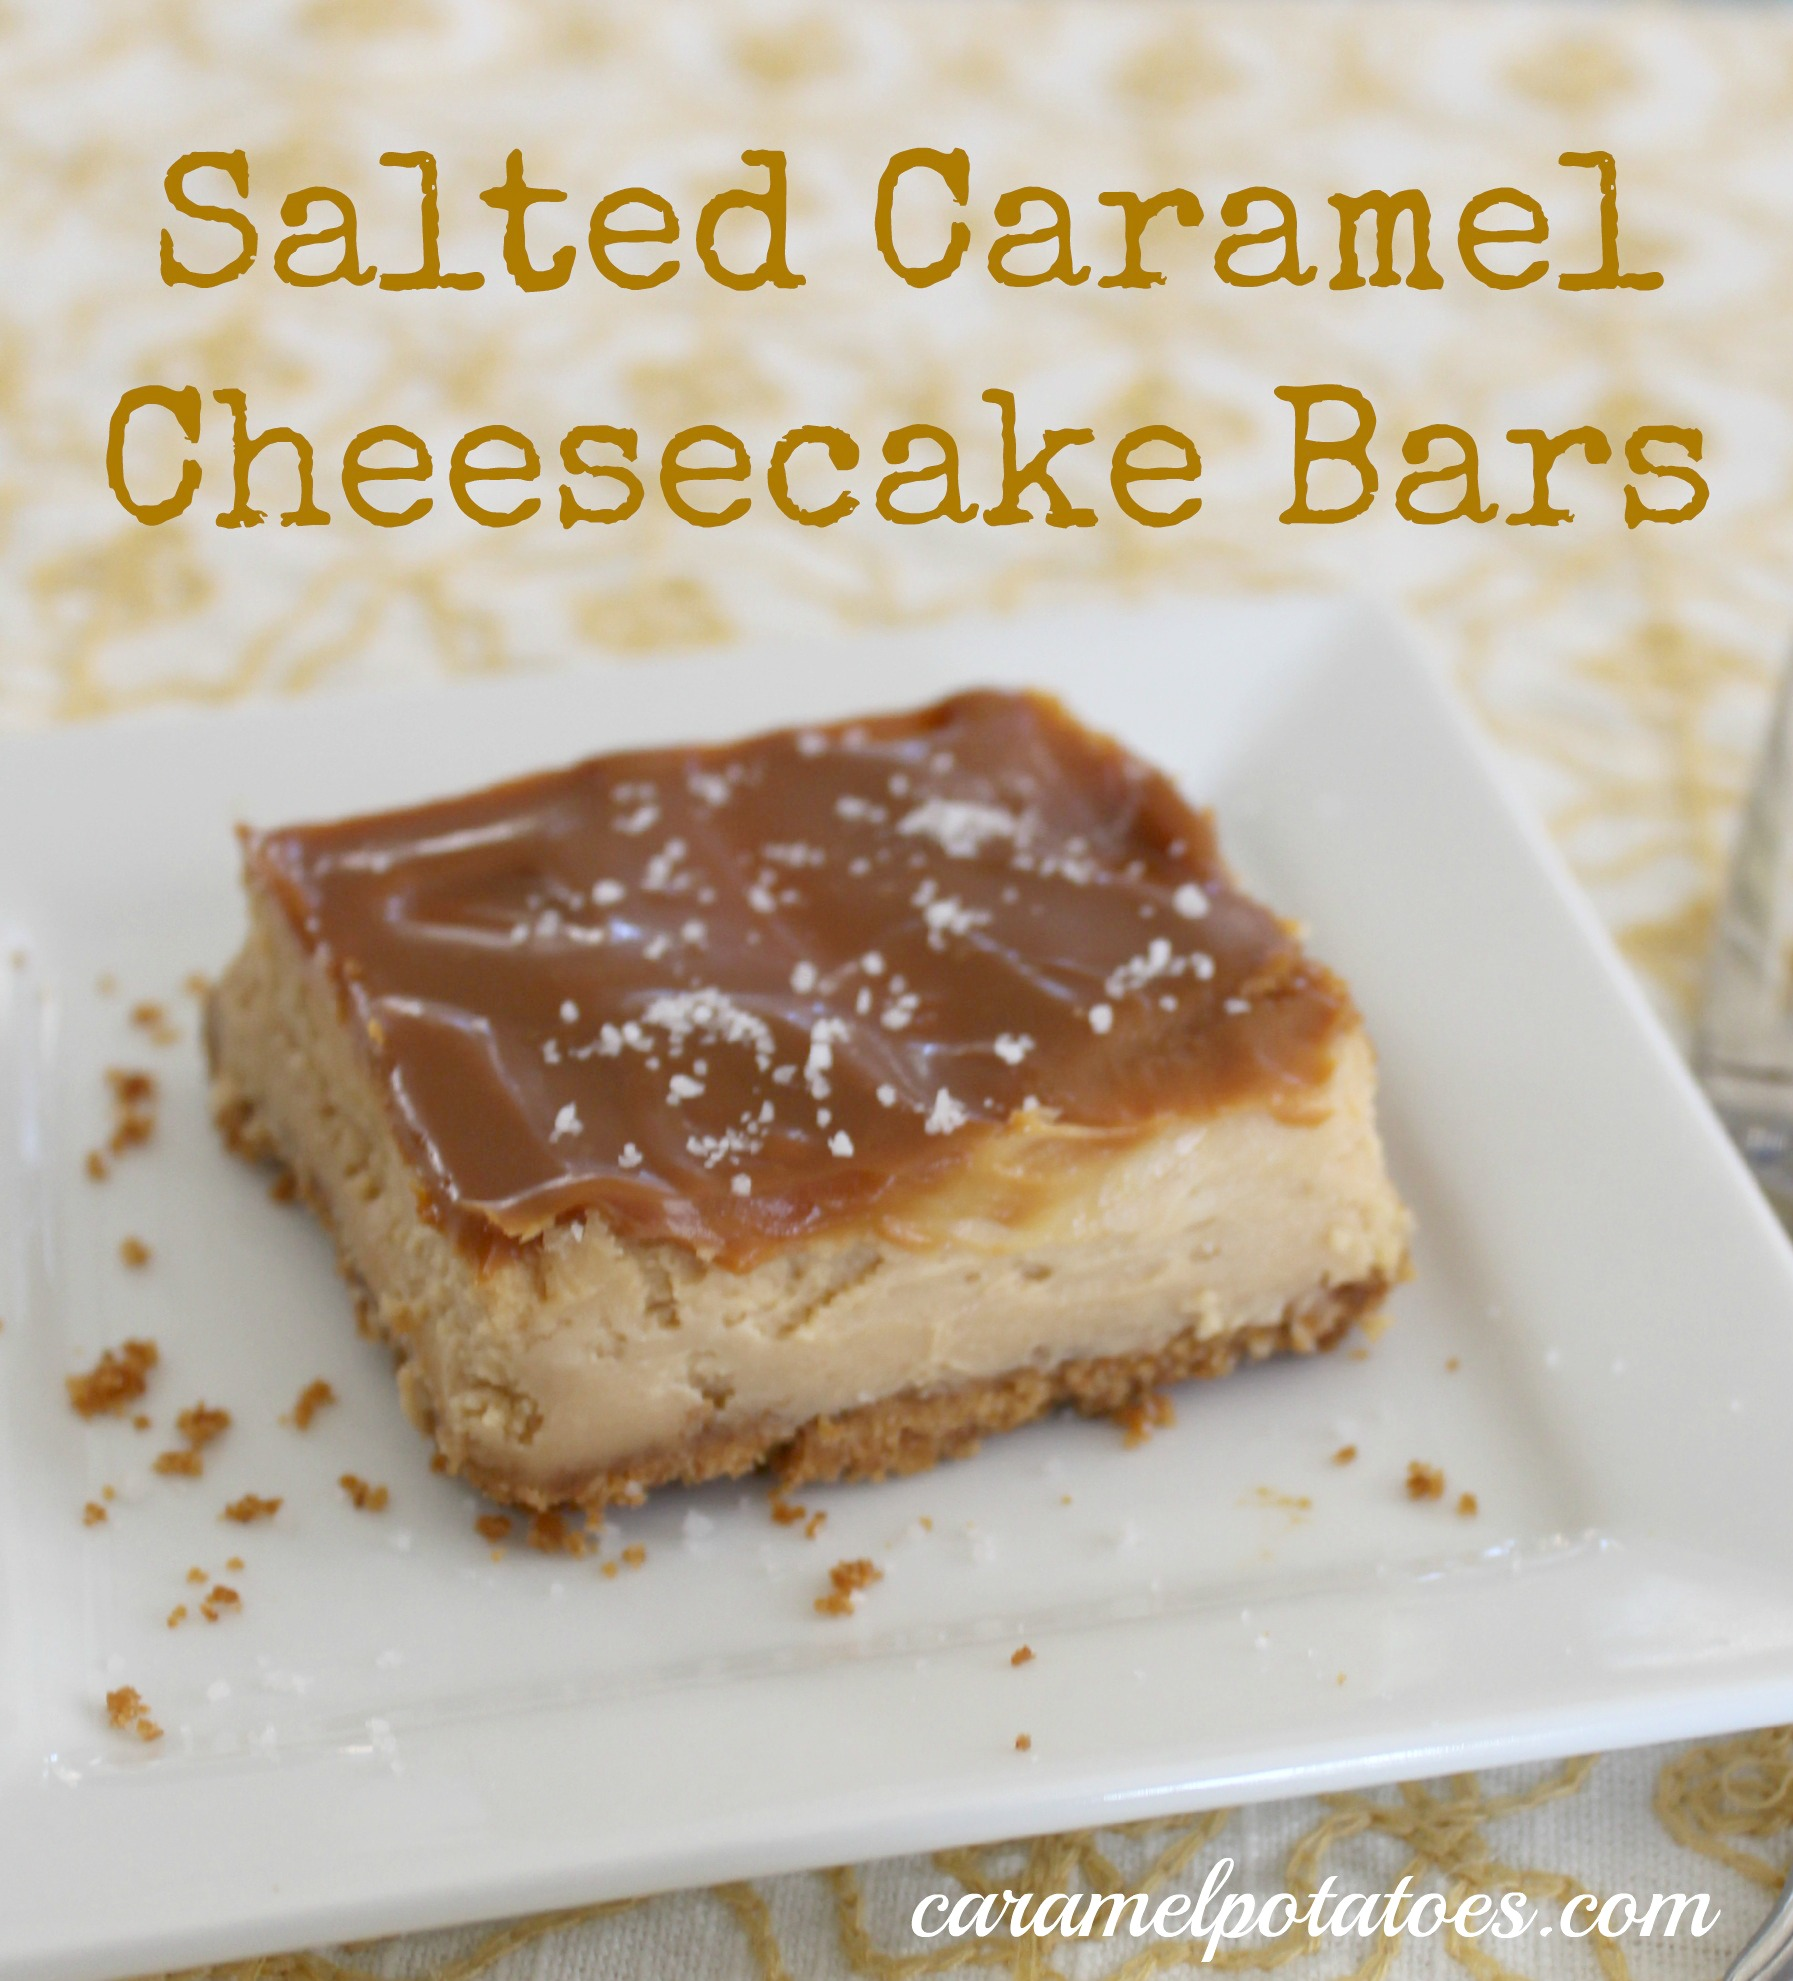 Caramel Potatoes » Salted Caramel Cheesecake Bars